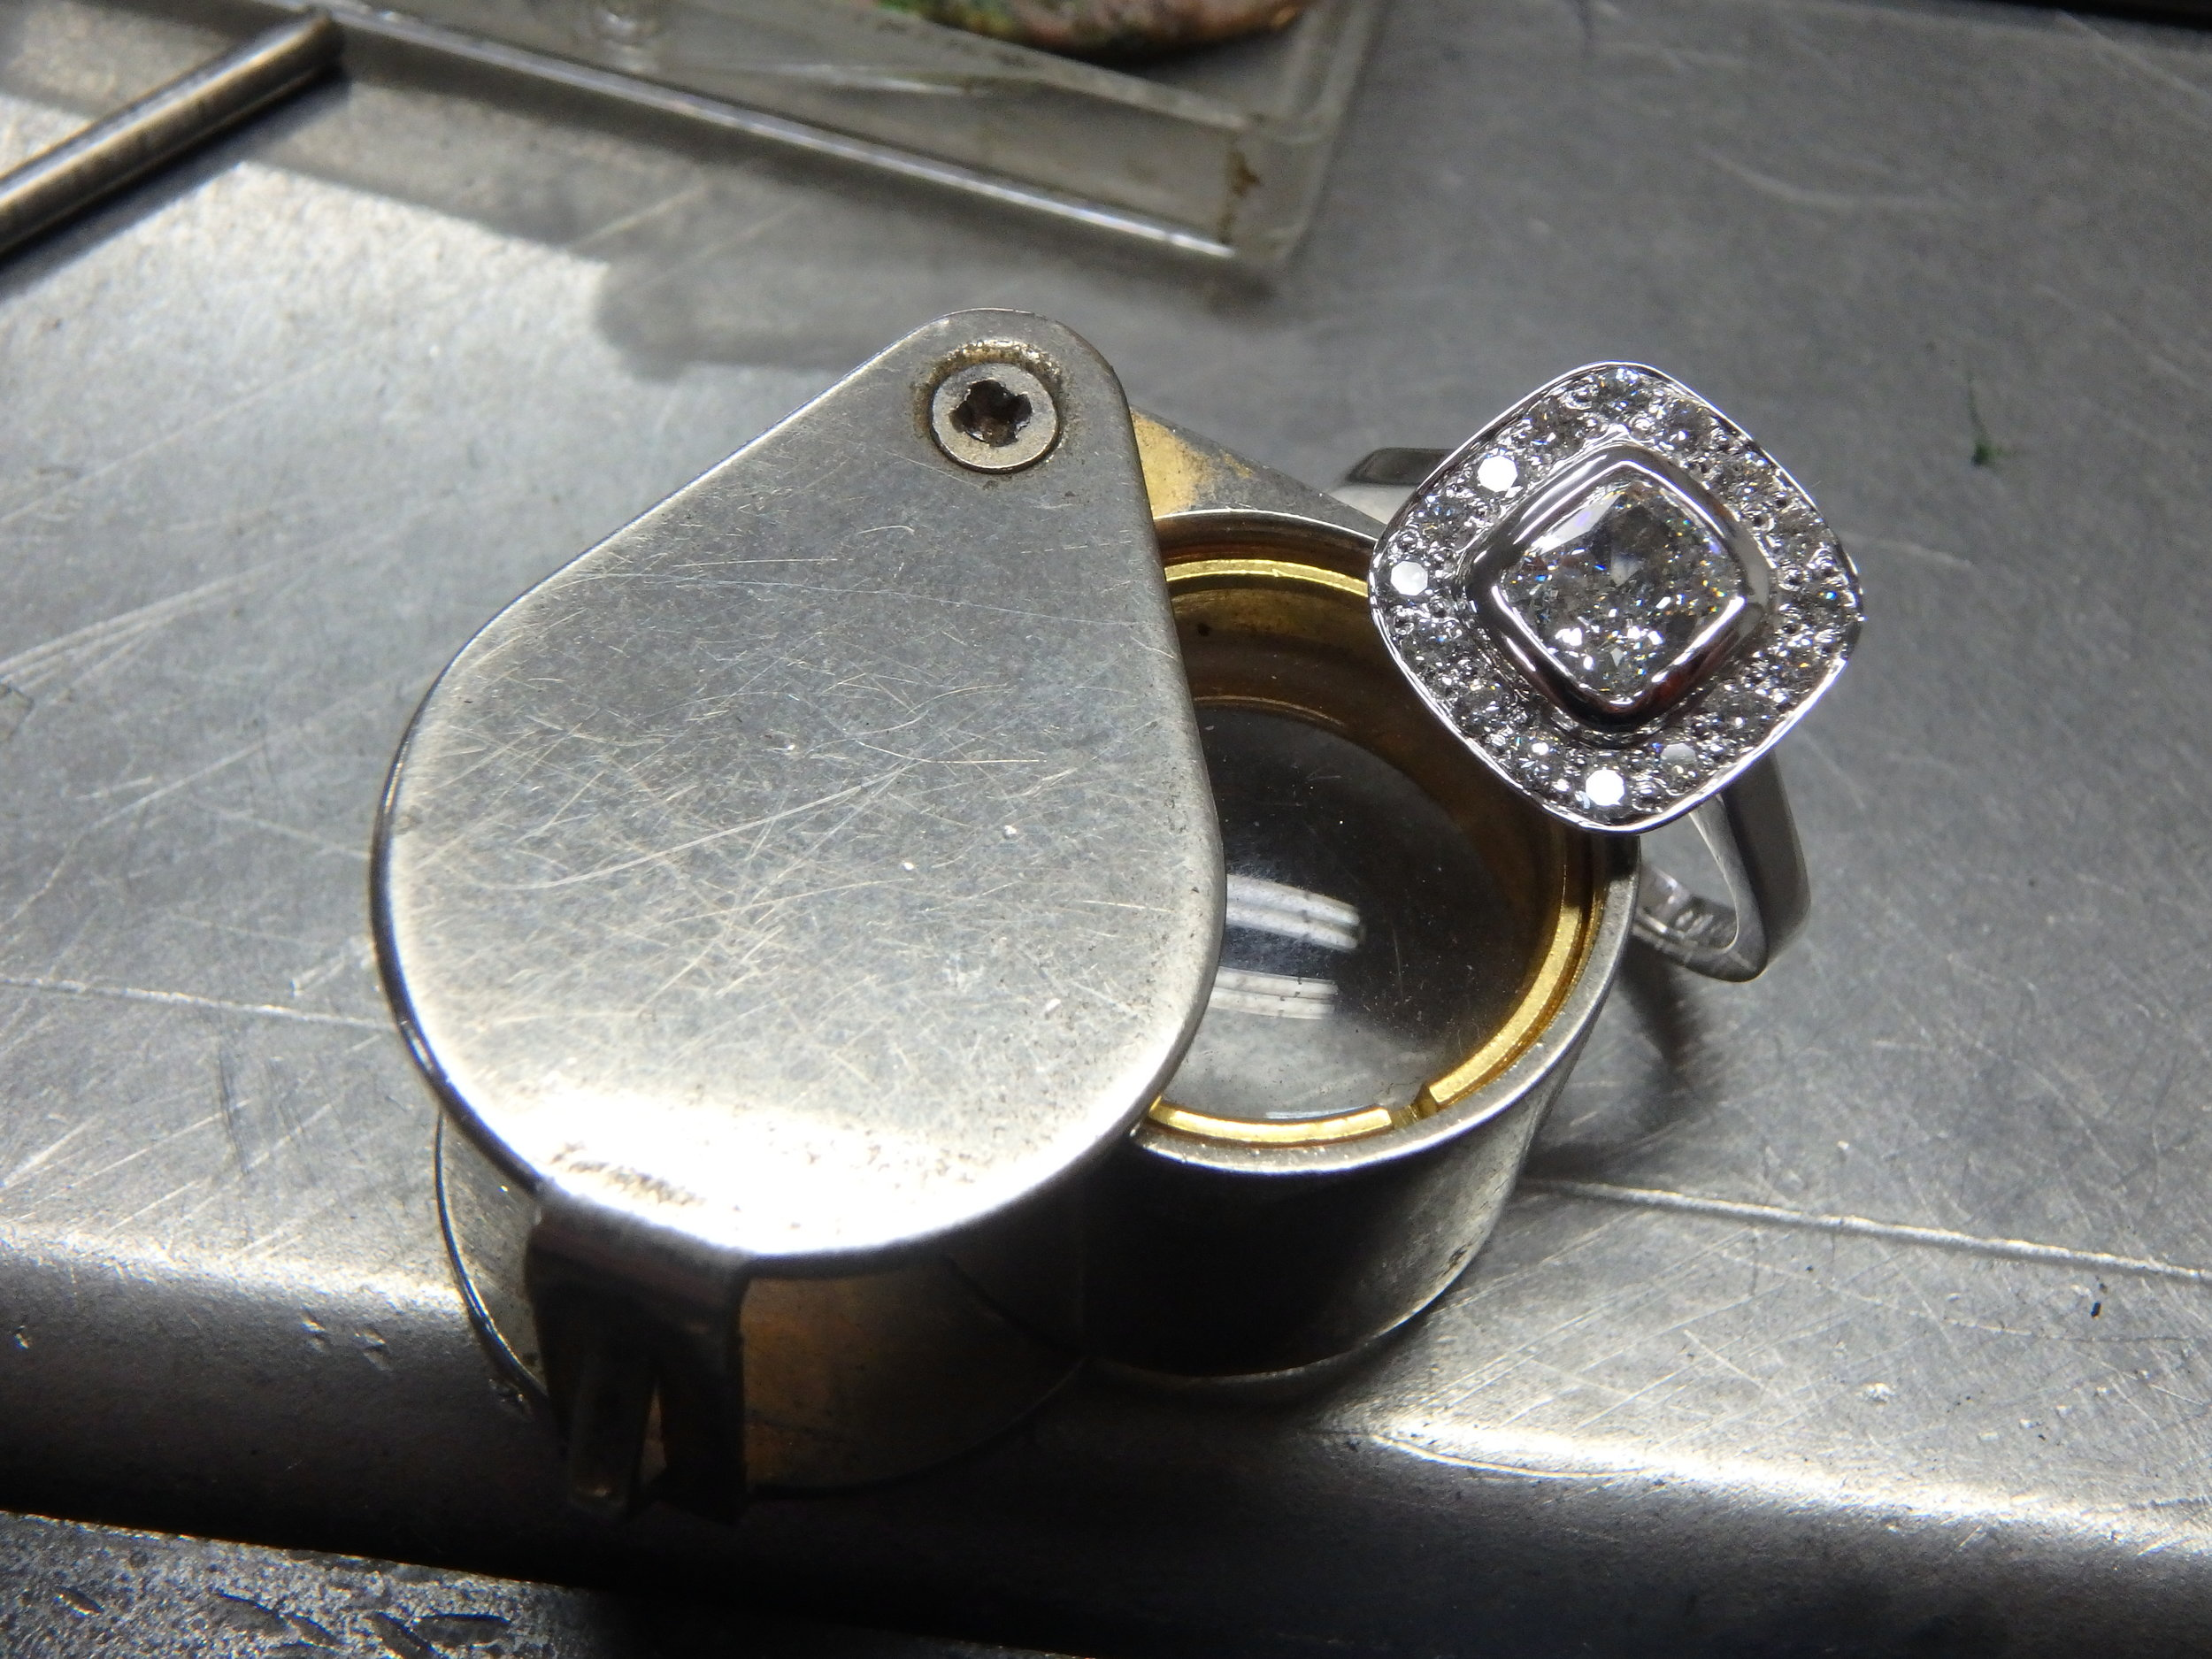 Perfection  - This allows Wynelle to give our customers a lifetime guarantee on the manufacturing of your precious piece.